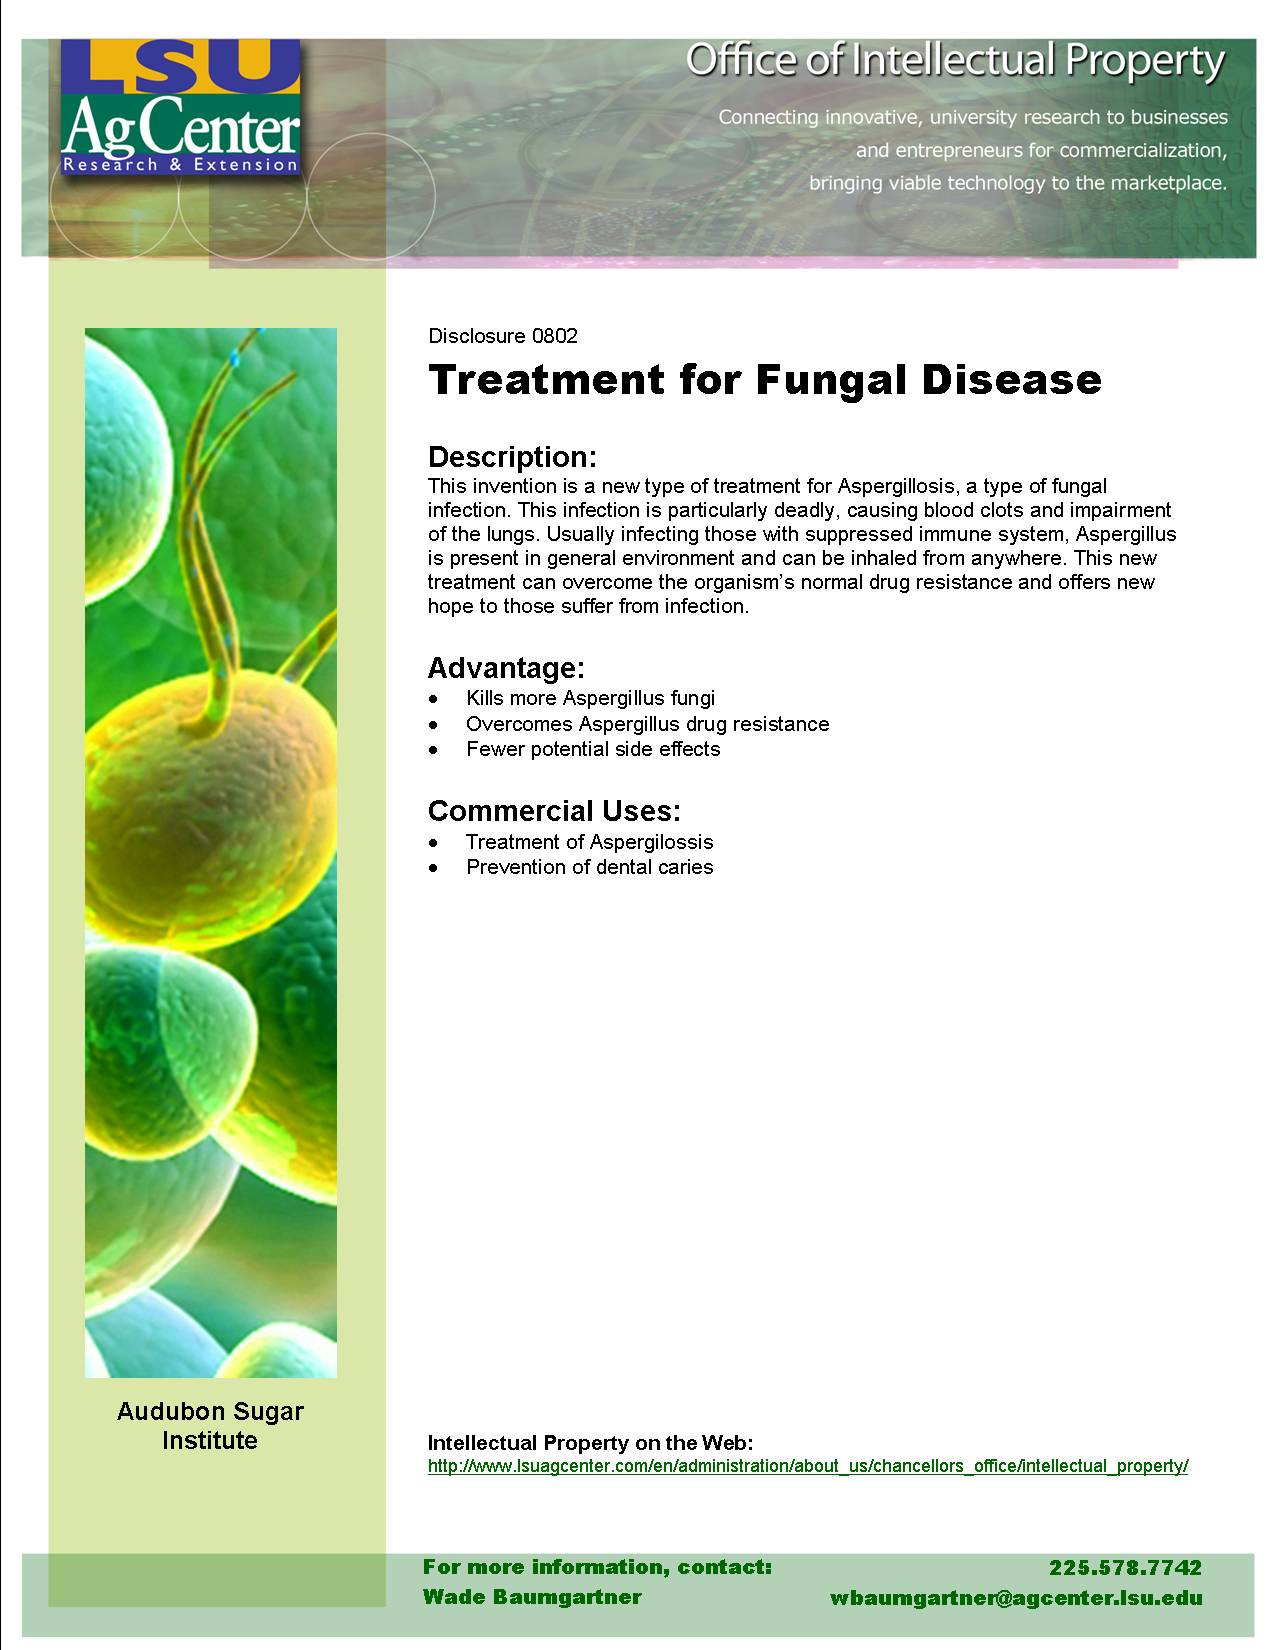 Sugar-Based Treatment for Fungal Disease